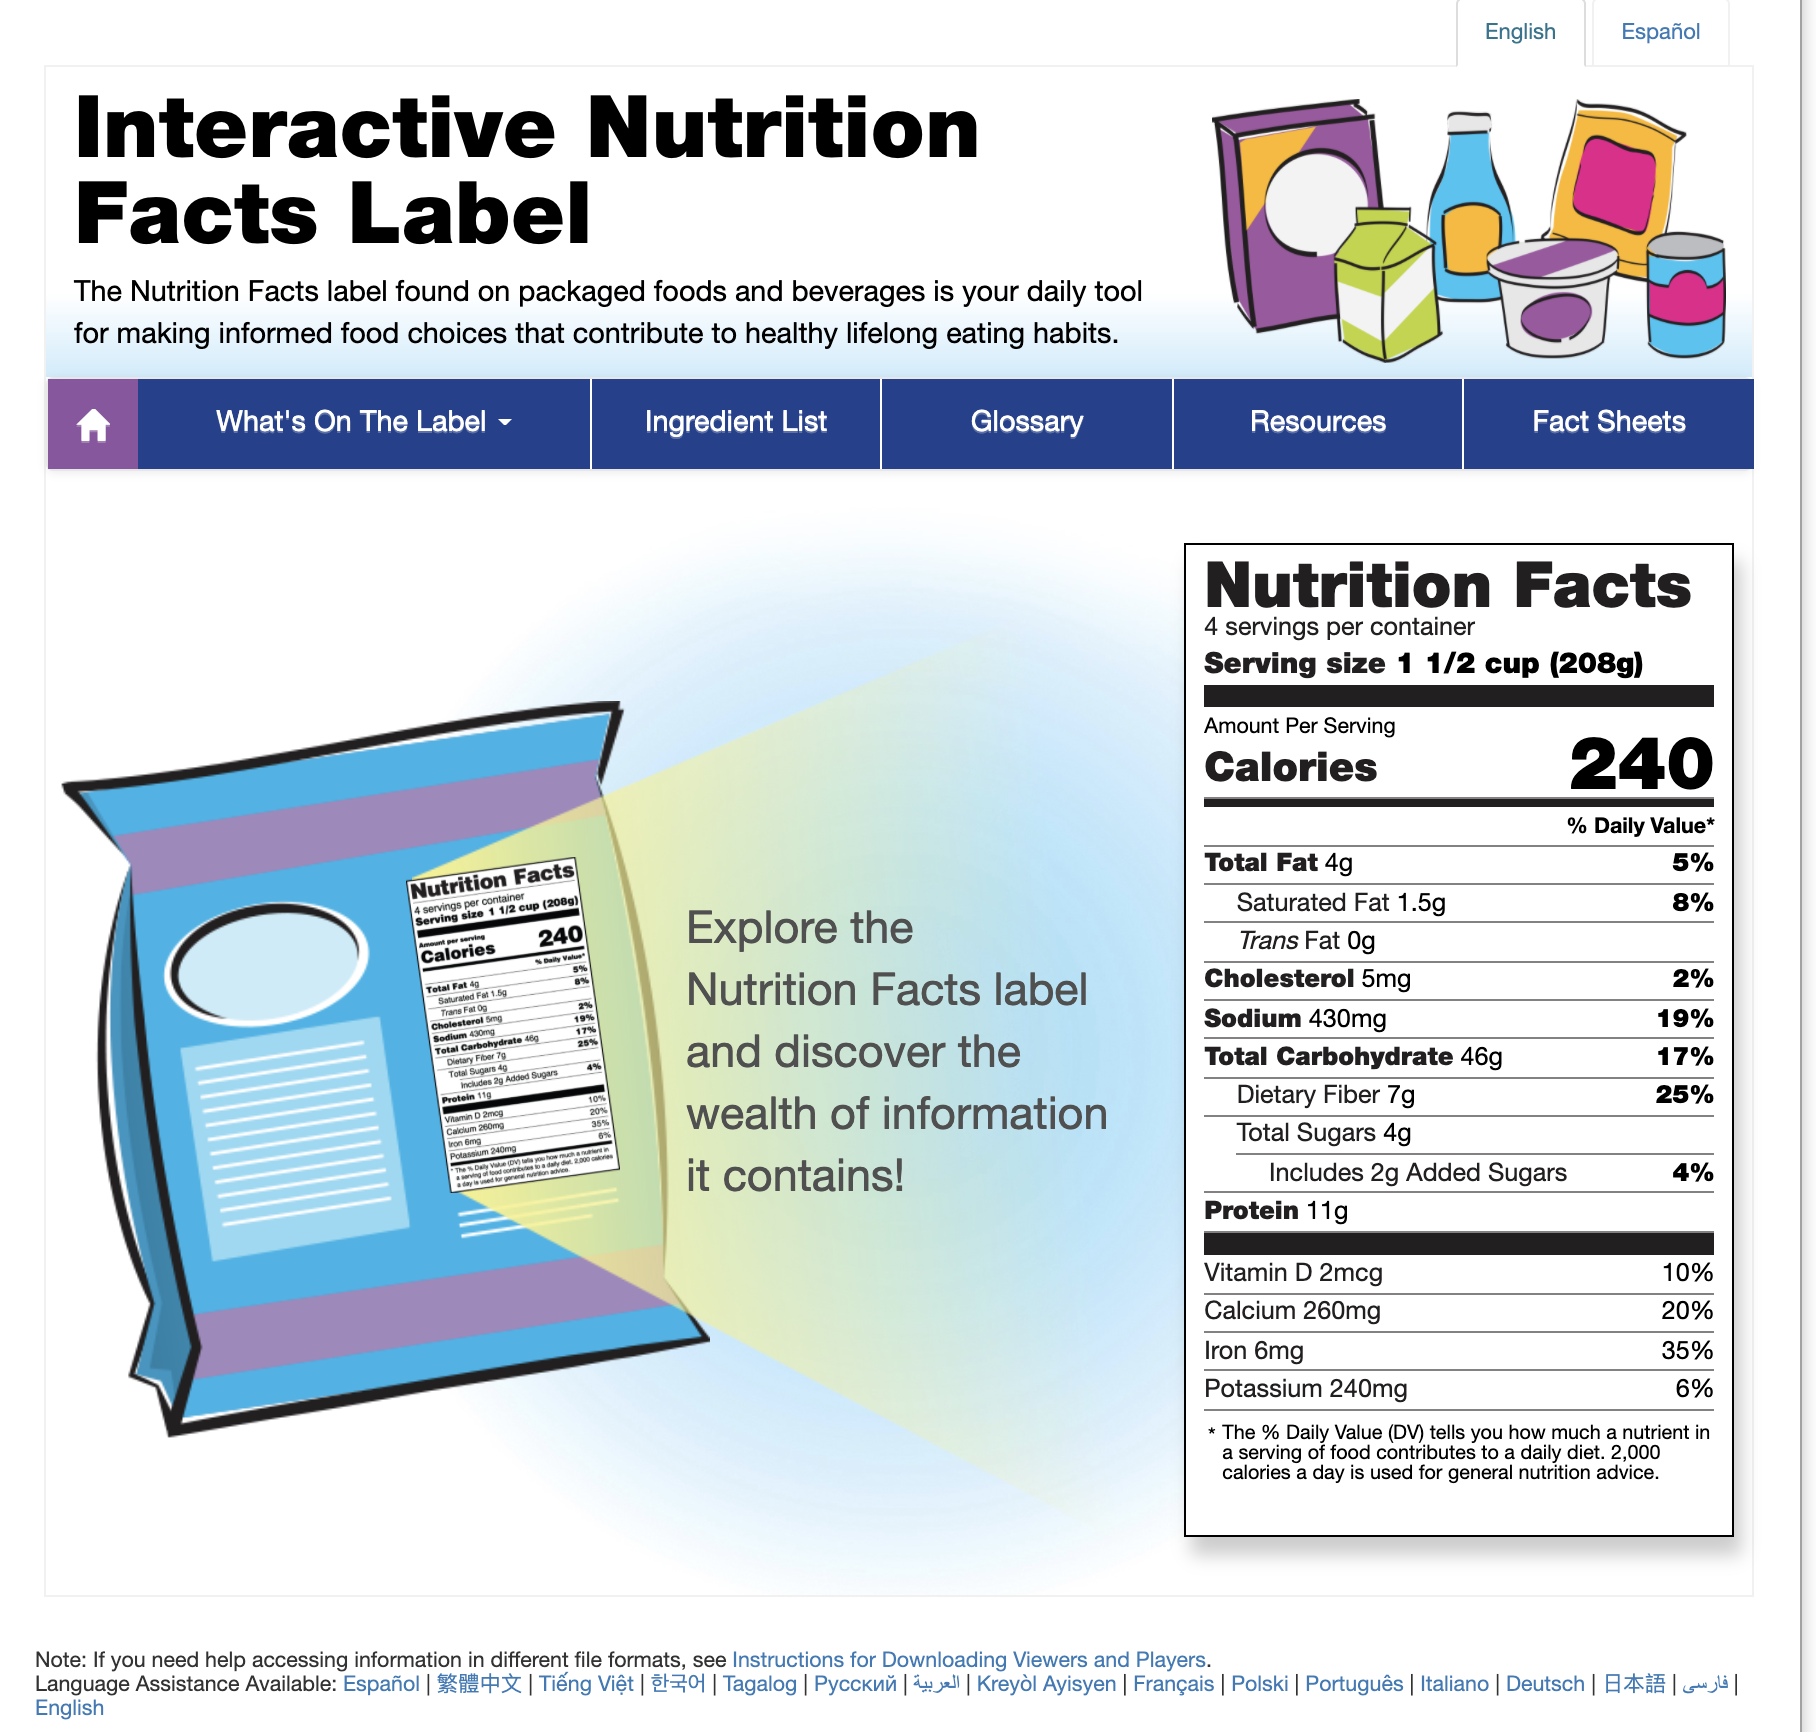 Interactive Nutrition Facts Label